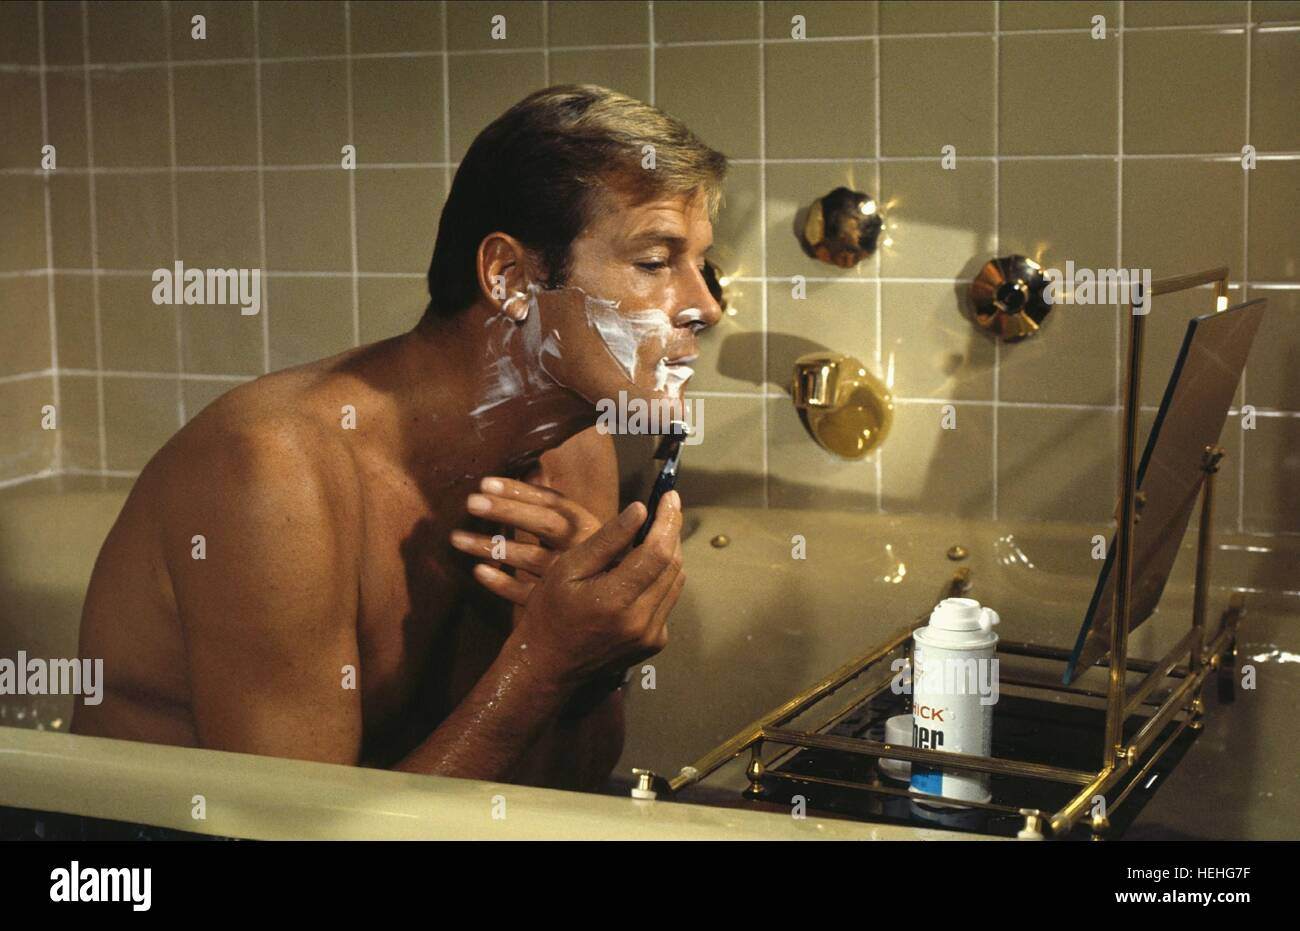 ROGER MOORE JAMES BOND: LIVE AND LET DIE (1973) - Stock Image